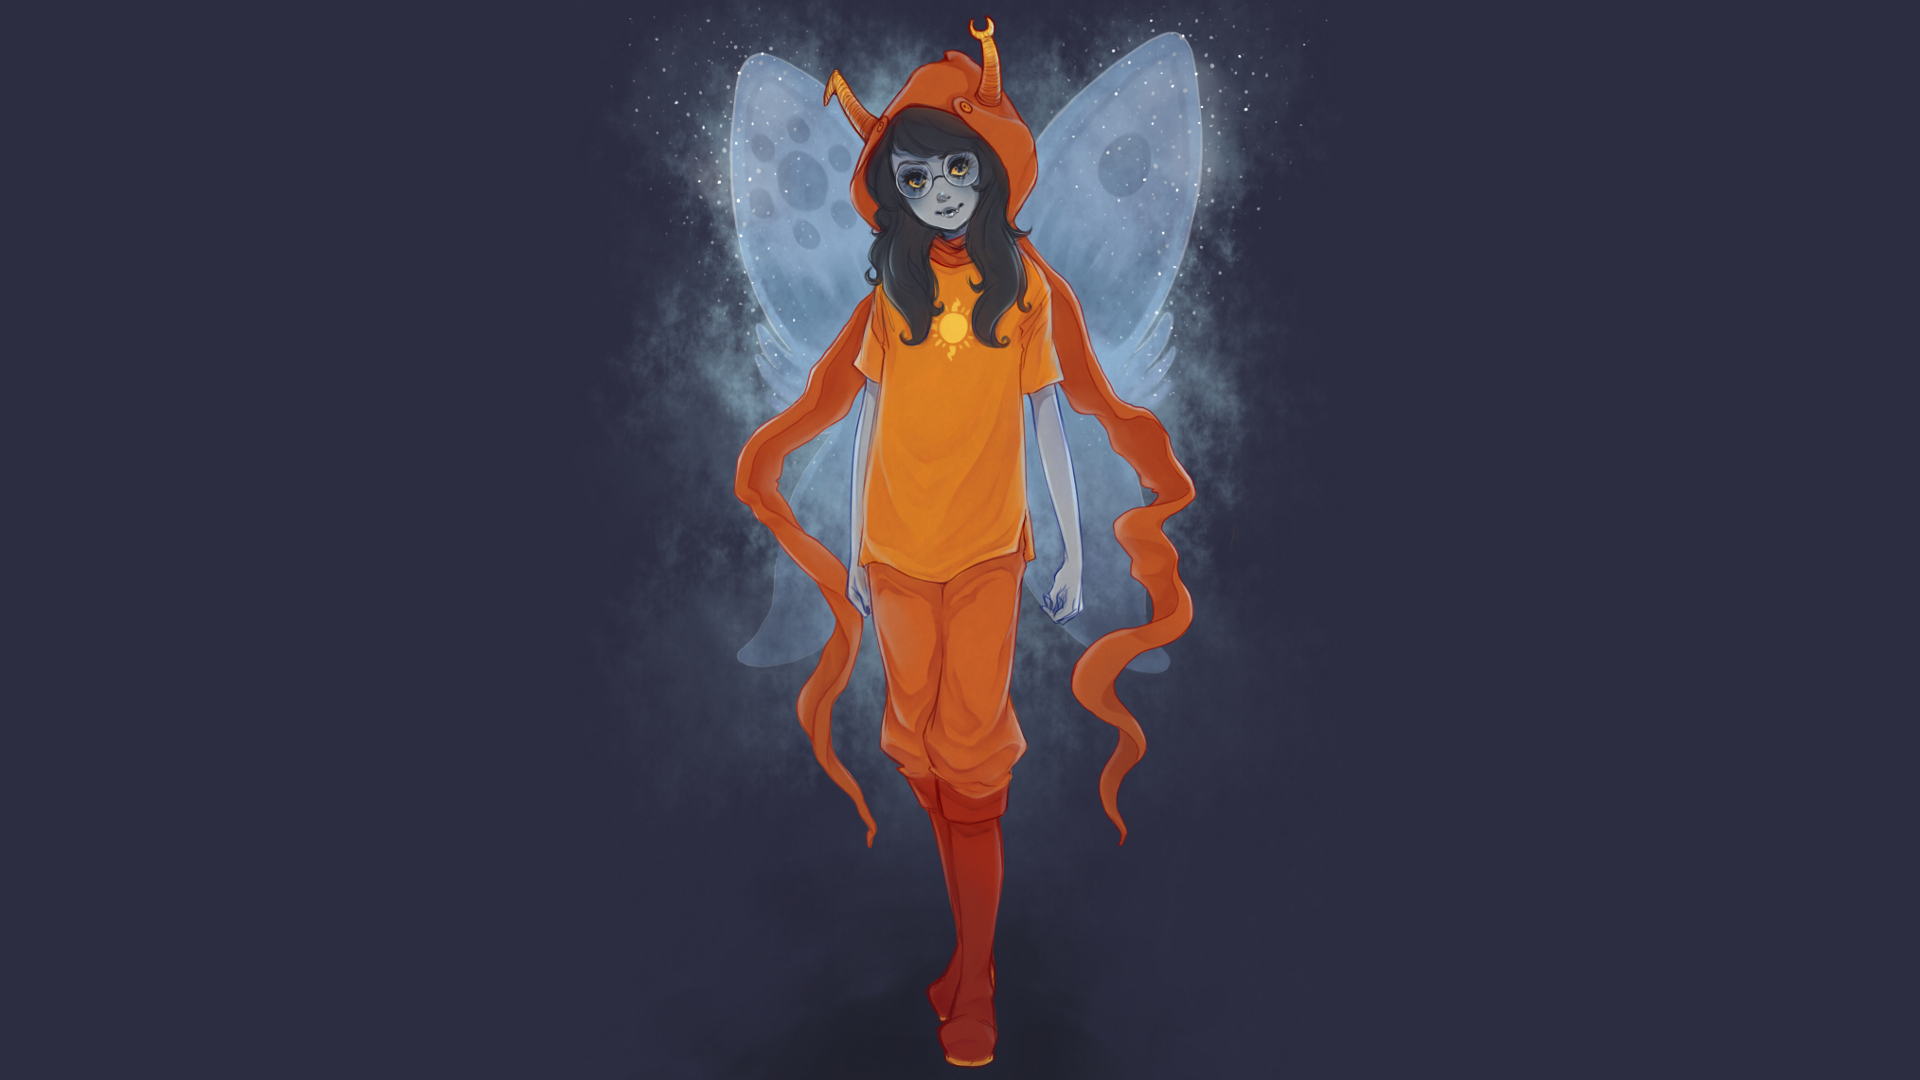 Homestuck HD Wallpaper 1920x1080 ID49823   WallpaperVortexcom 1920x1080